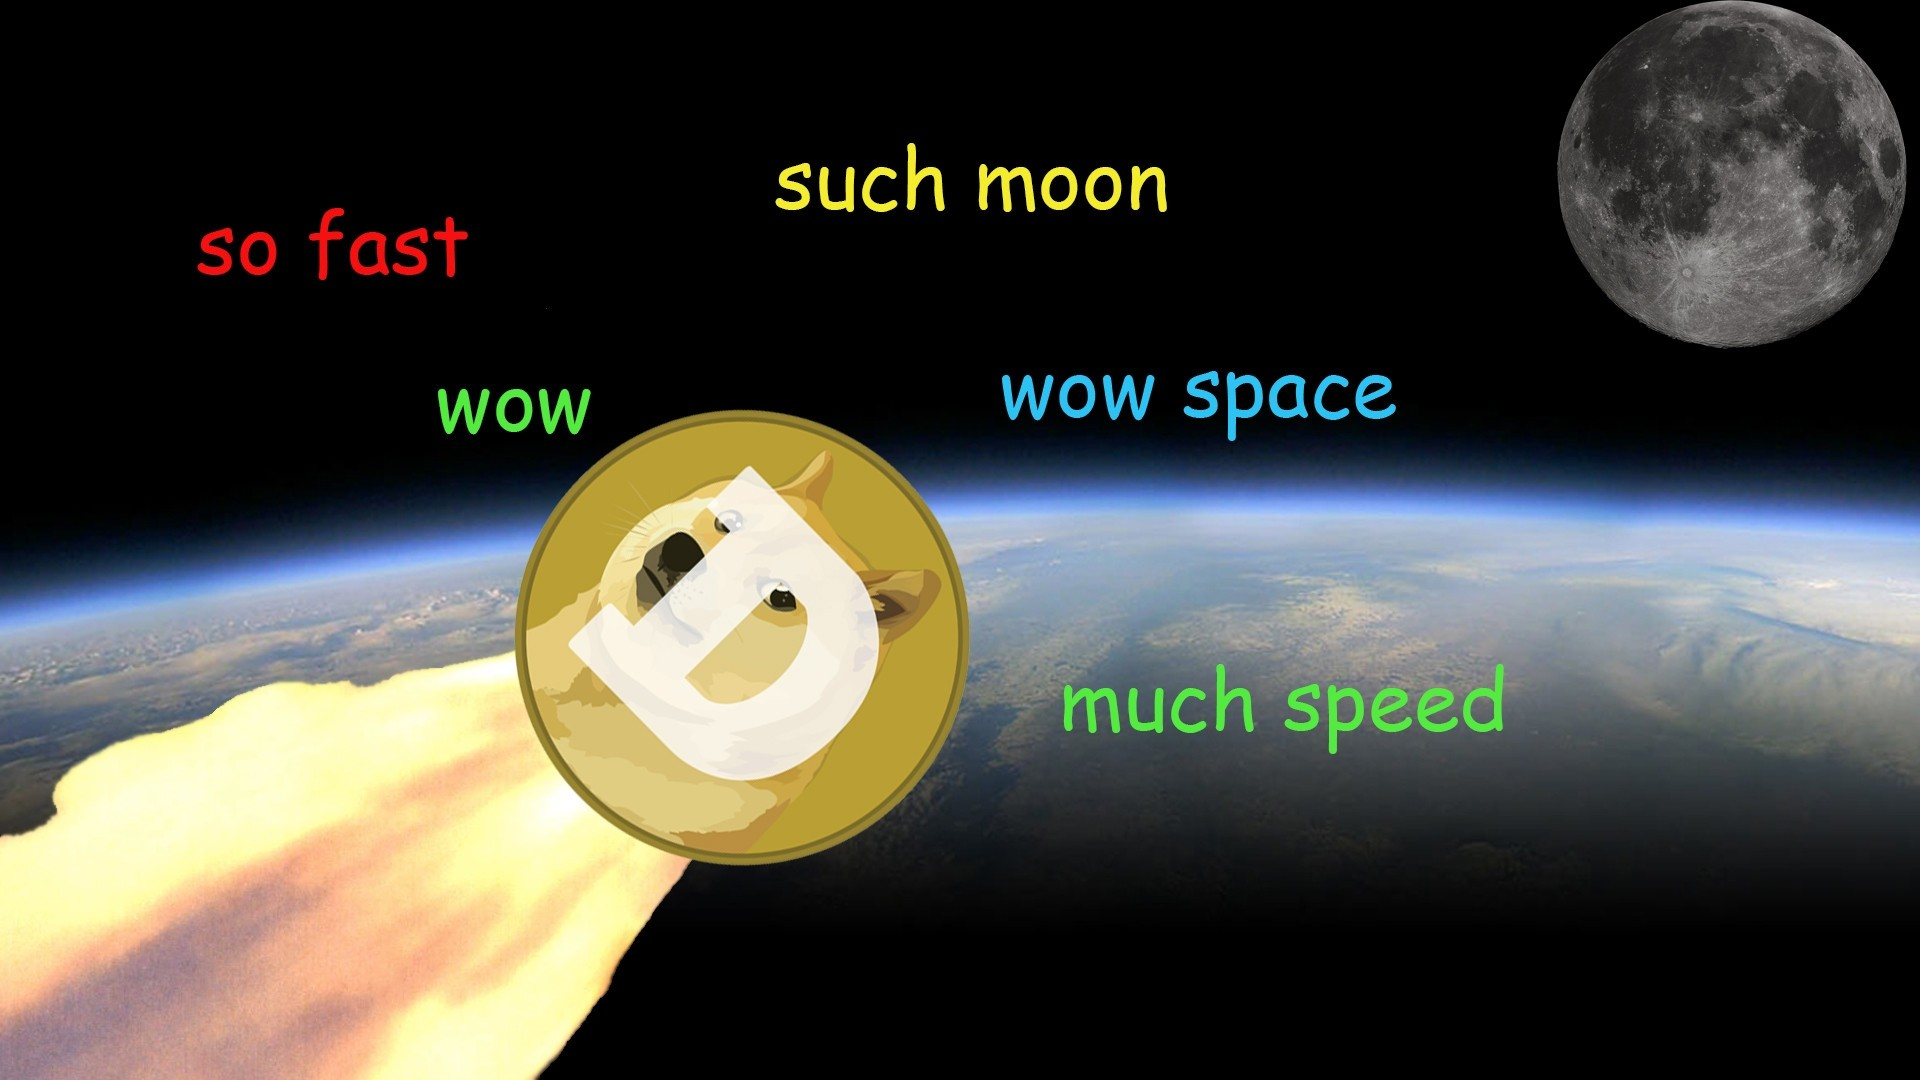 Doge Wallpaper, Doge wallpaper to the moon.